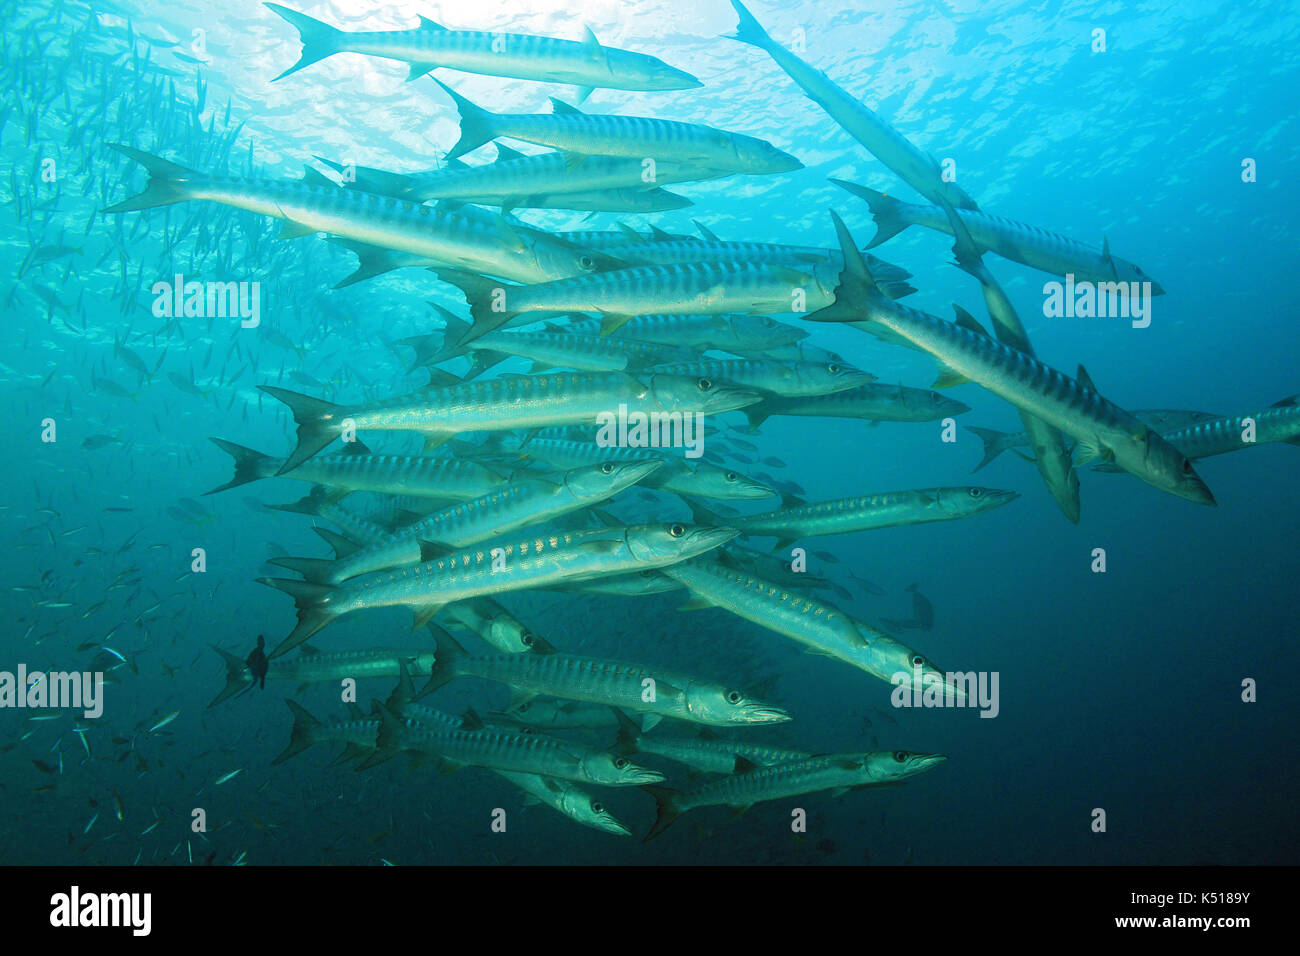 School of Blackfin Barracudas (Sphyraena qenie, aka Chevron Barracuda, Blacktail Barracuda). Raja Ampat, Indonesia - Stock Image